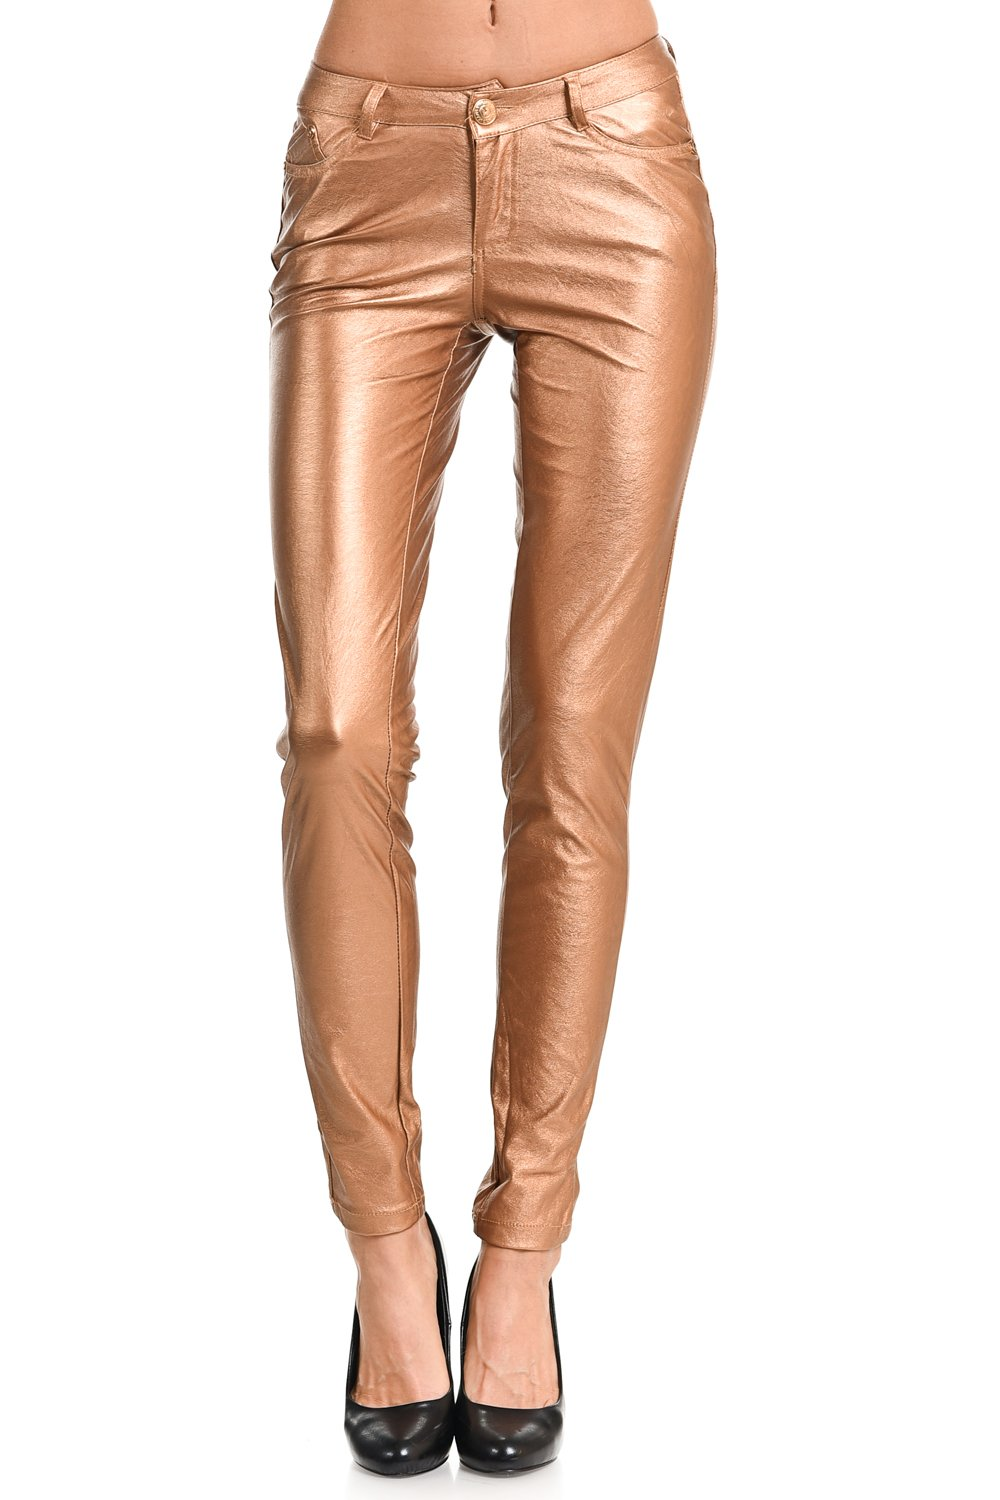 VIRGIN ONLY Women's Textured Skinny Pants (66 Light Brown, Size S)